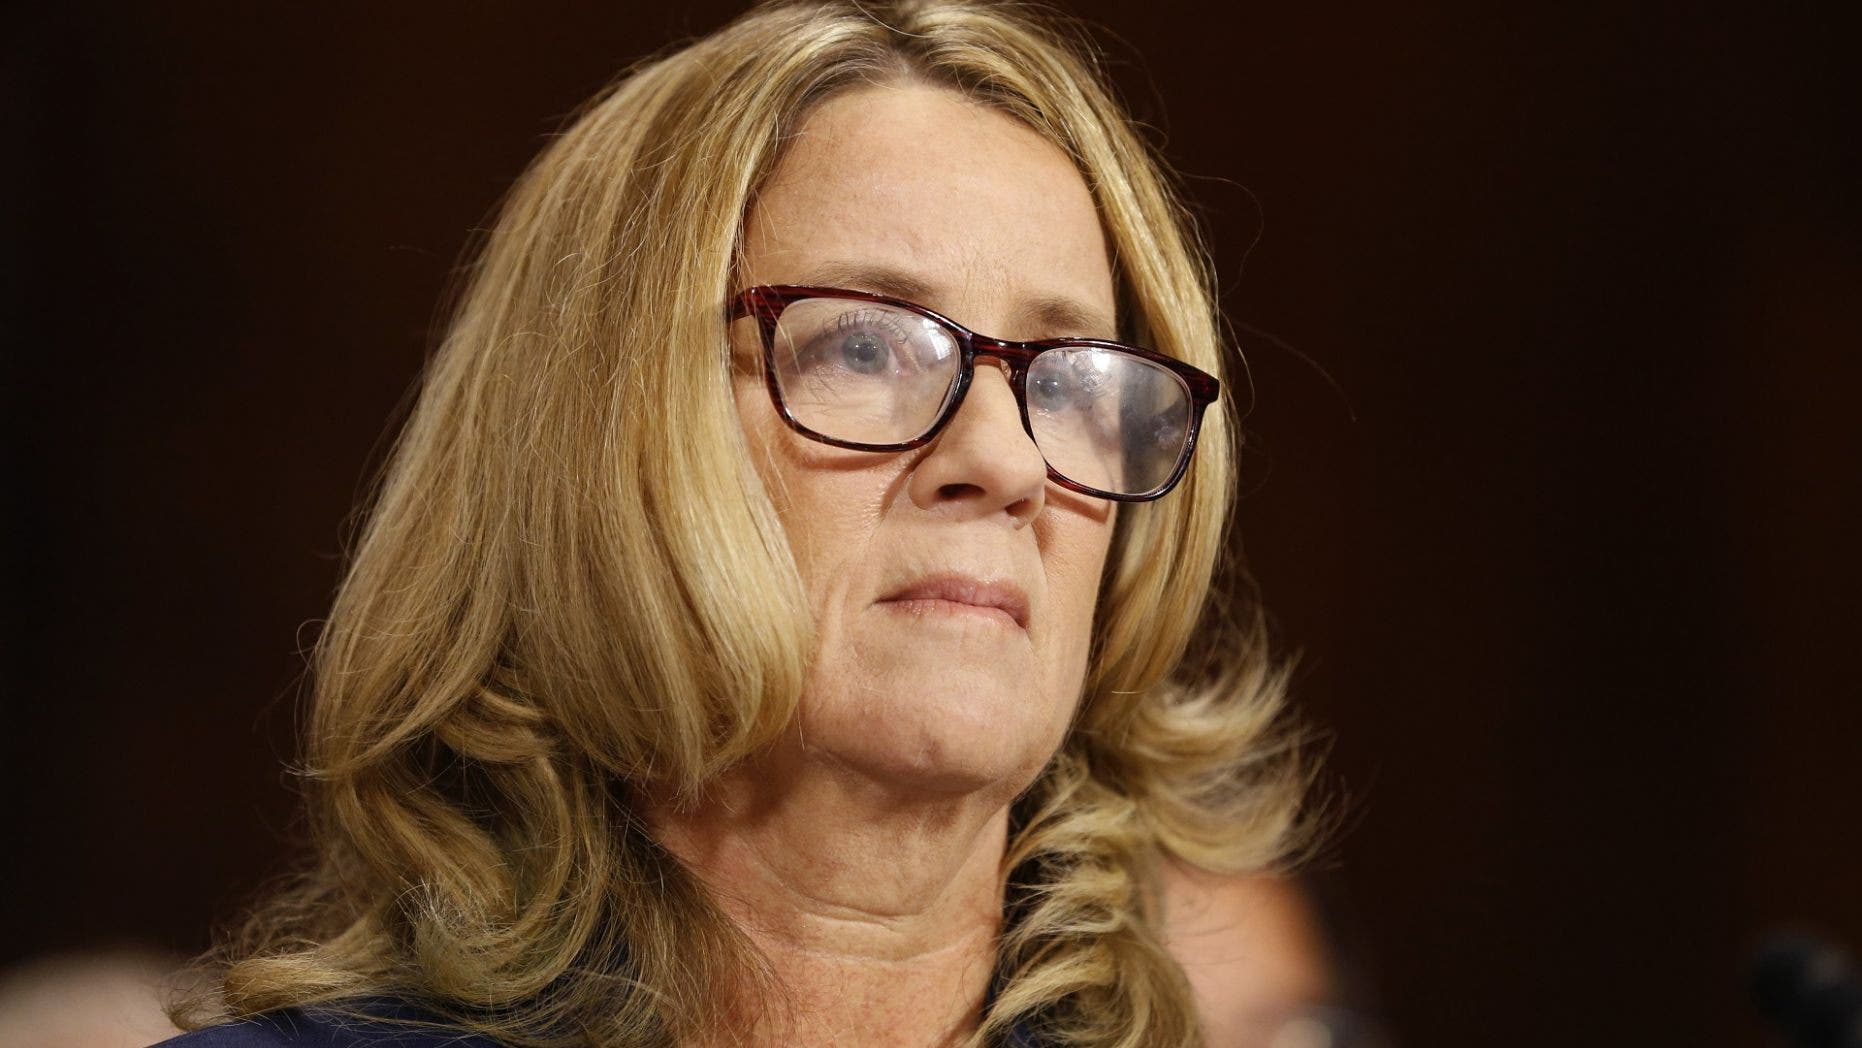 Westlake Legal Group BlaseyFord092719 This Day in History: Sept. 27 fox-news/us/this-day-in-history fox news fnc/us fnc article 278680e7-8437-5bb4-be64-95b1e0908855